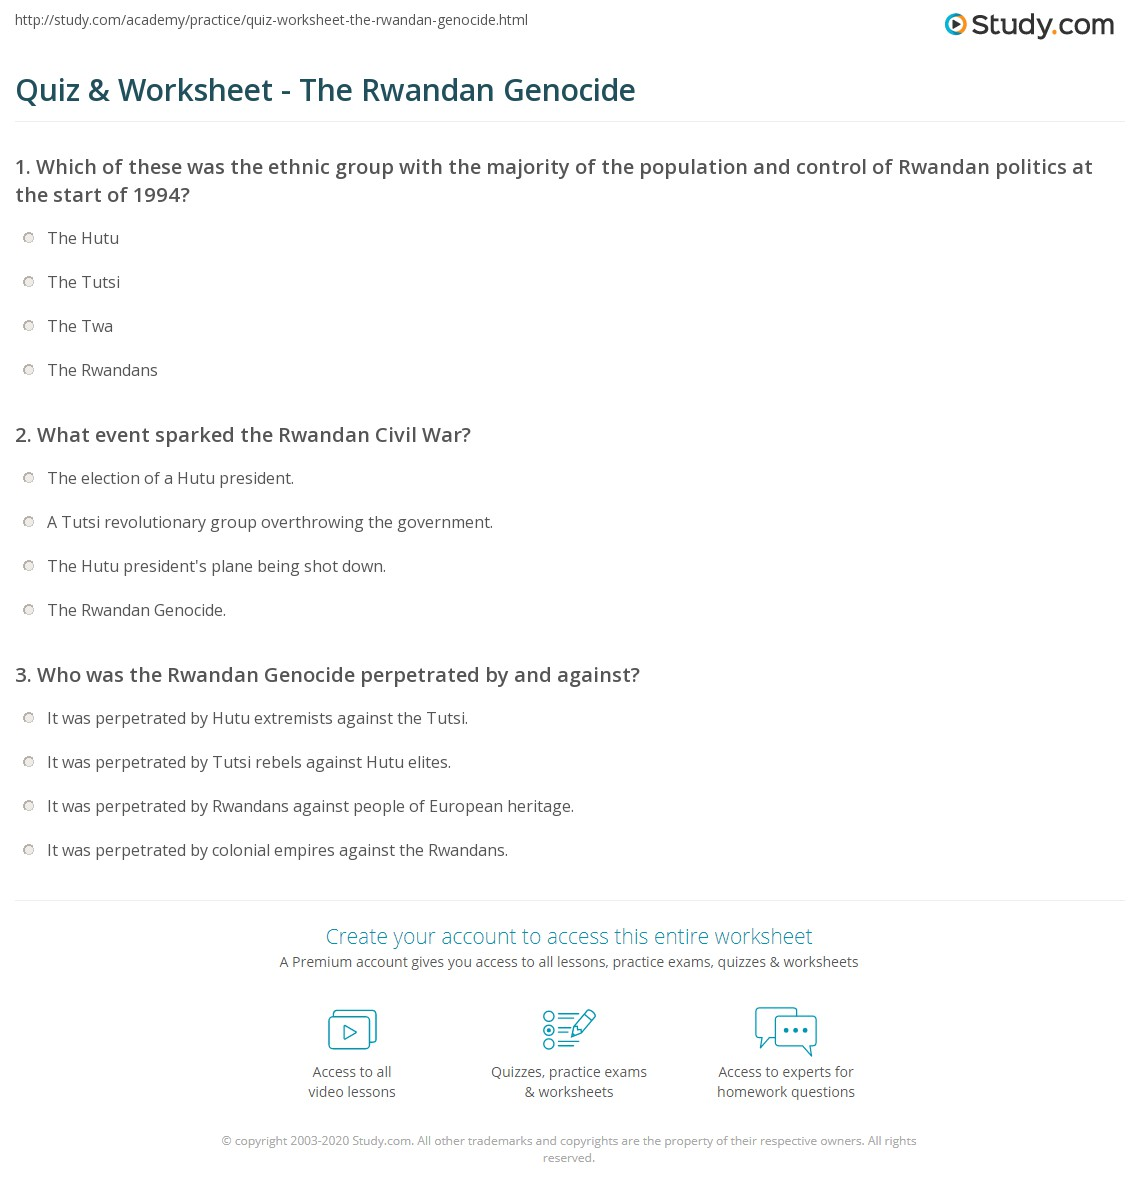 worksheet Hotel Rwanda Worksheet hotel rwanda essay about paper smoking research paperquot genocide quiz amp worksheet the rwandan study com print facts